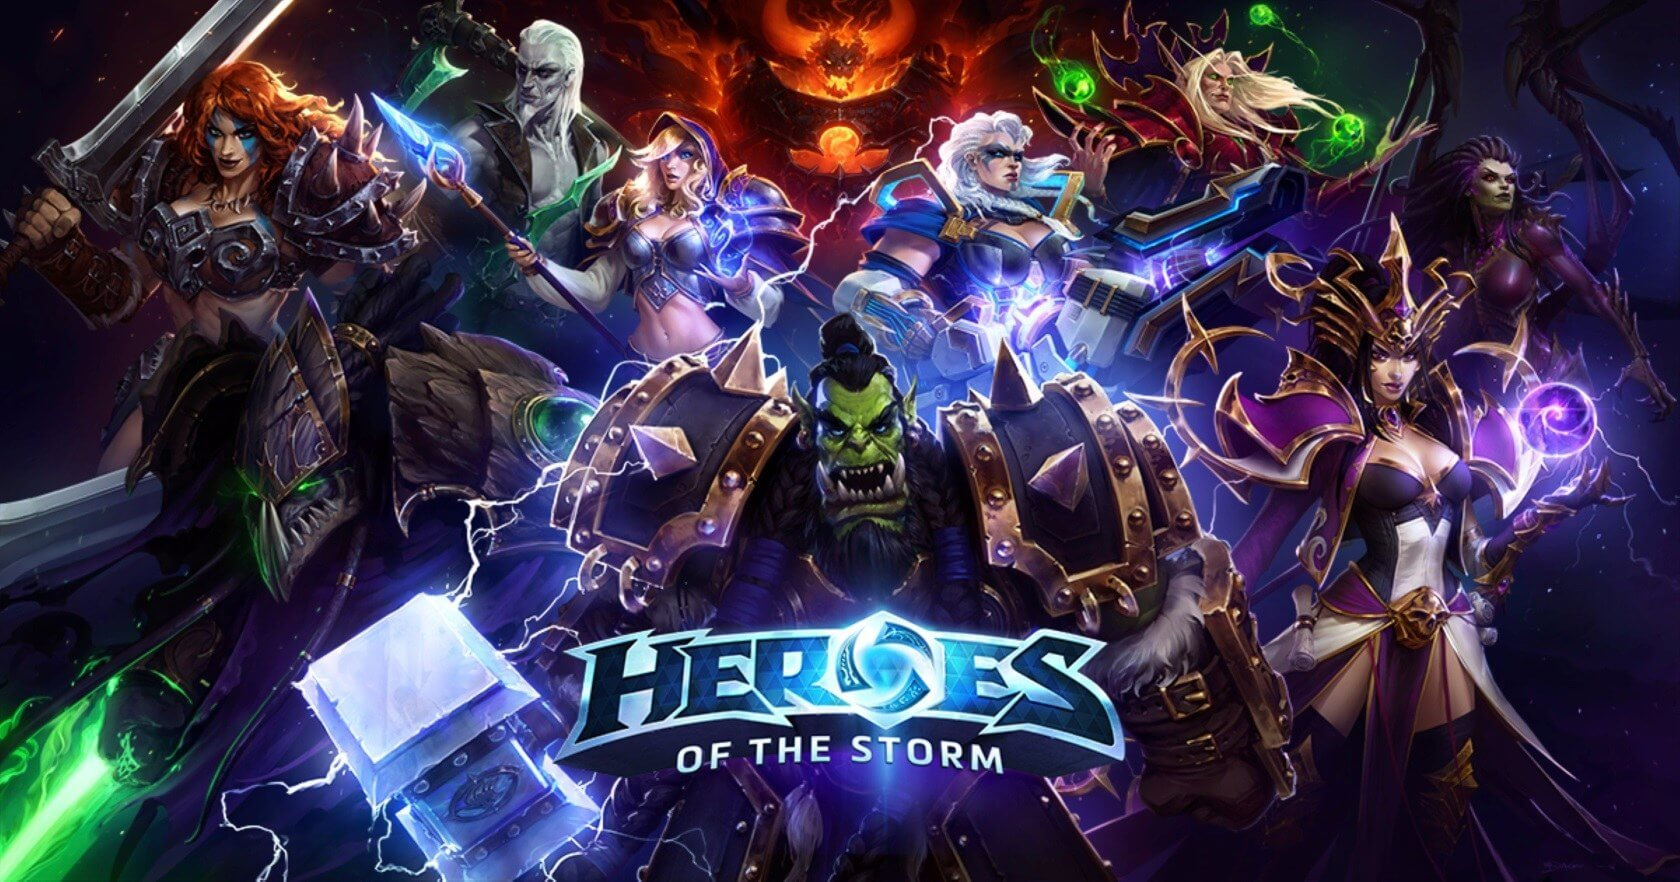 Blizzard shifts developers away from Heroes of the Storm